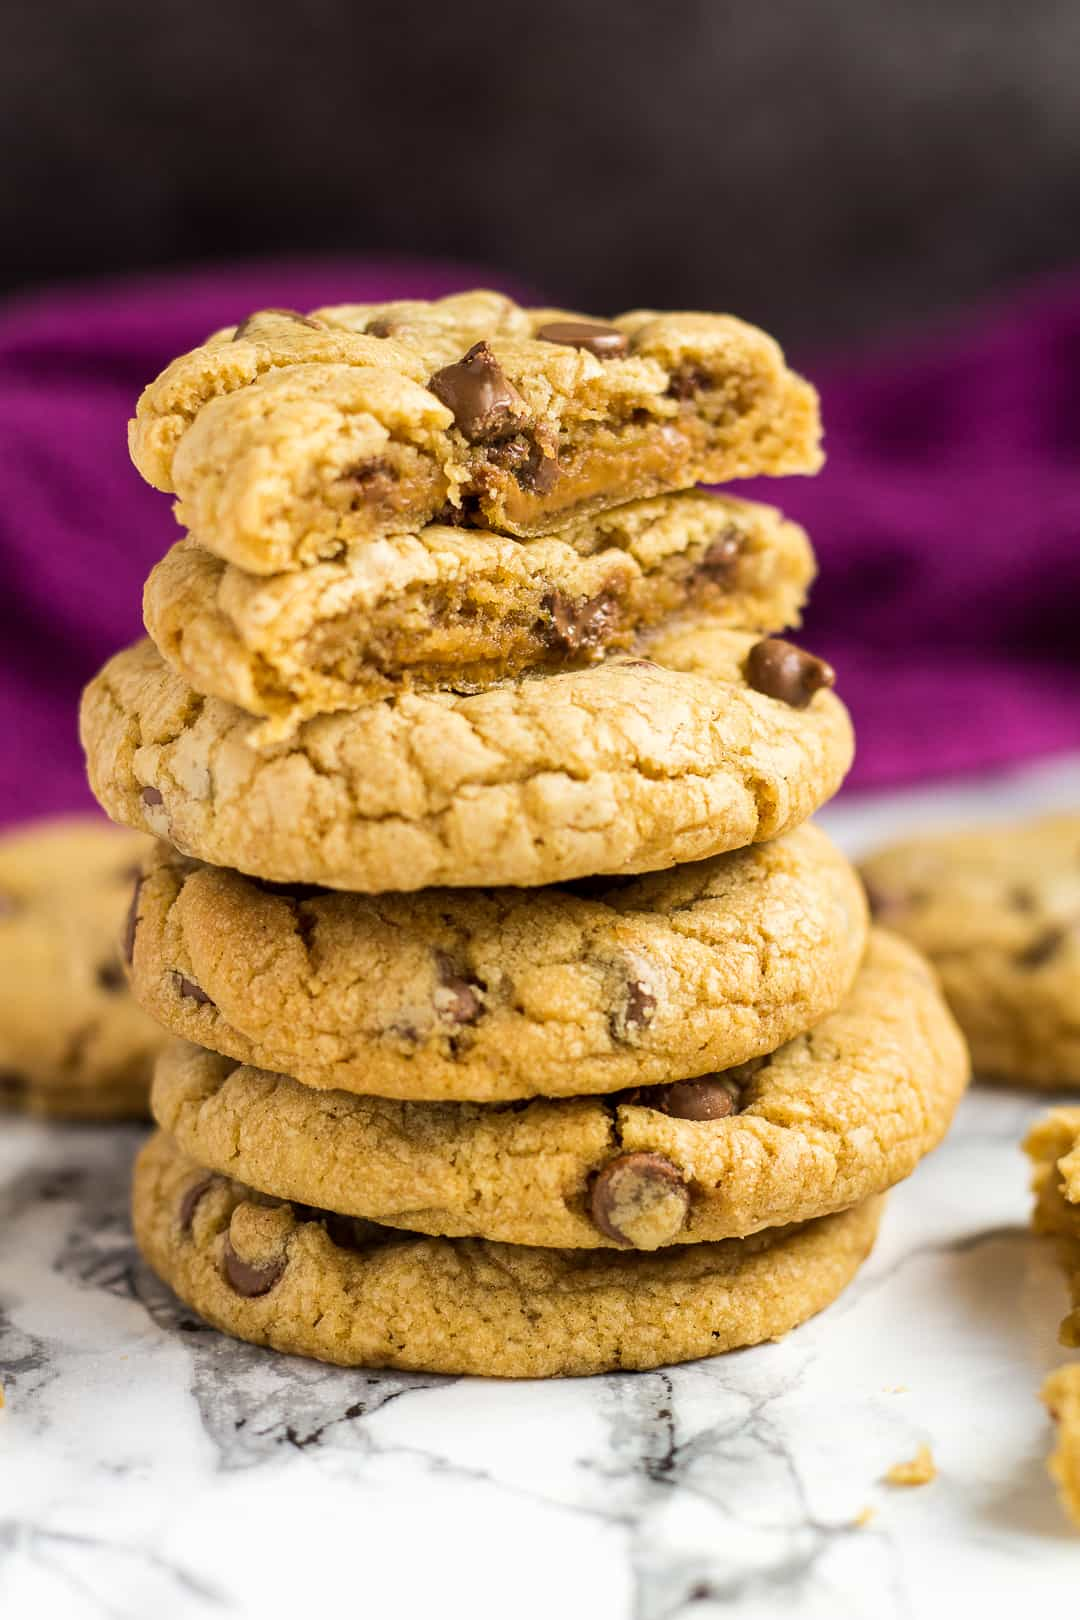 Stack of chocolate chip cookies with top cookie showing Biscoff centre.